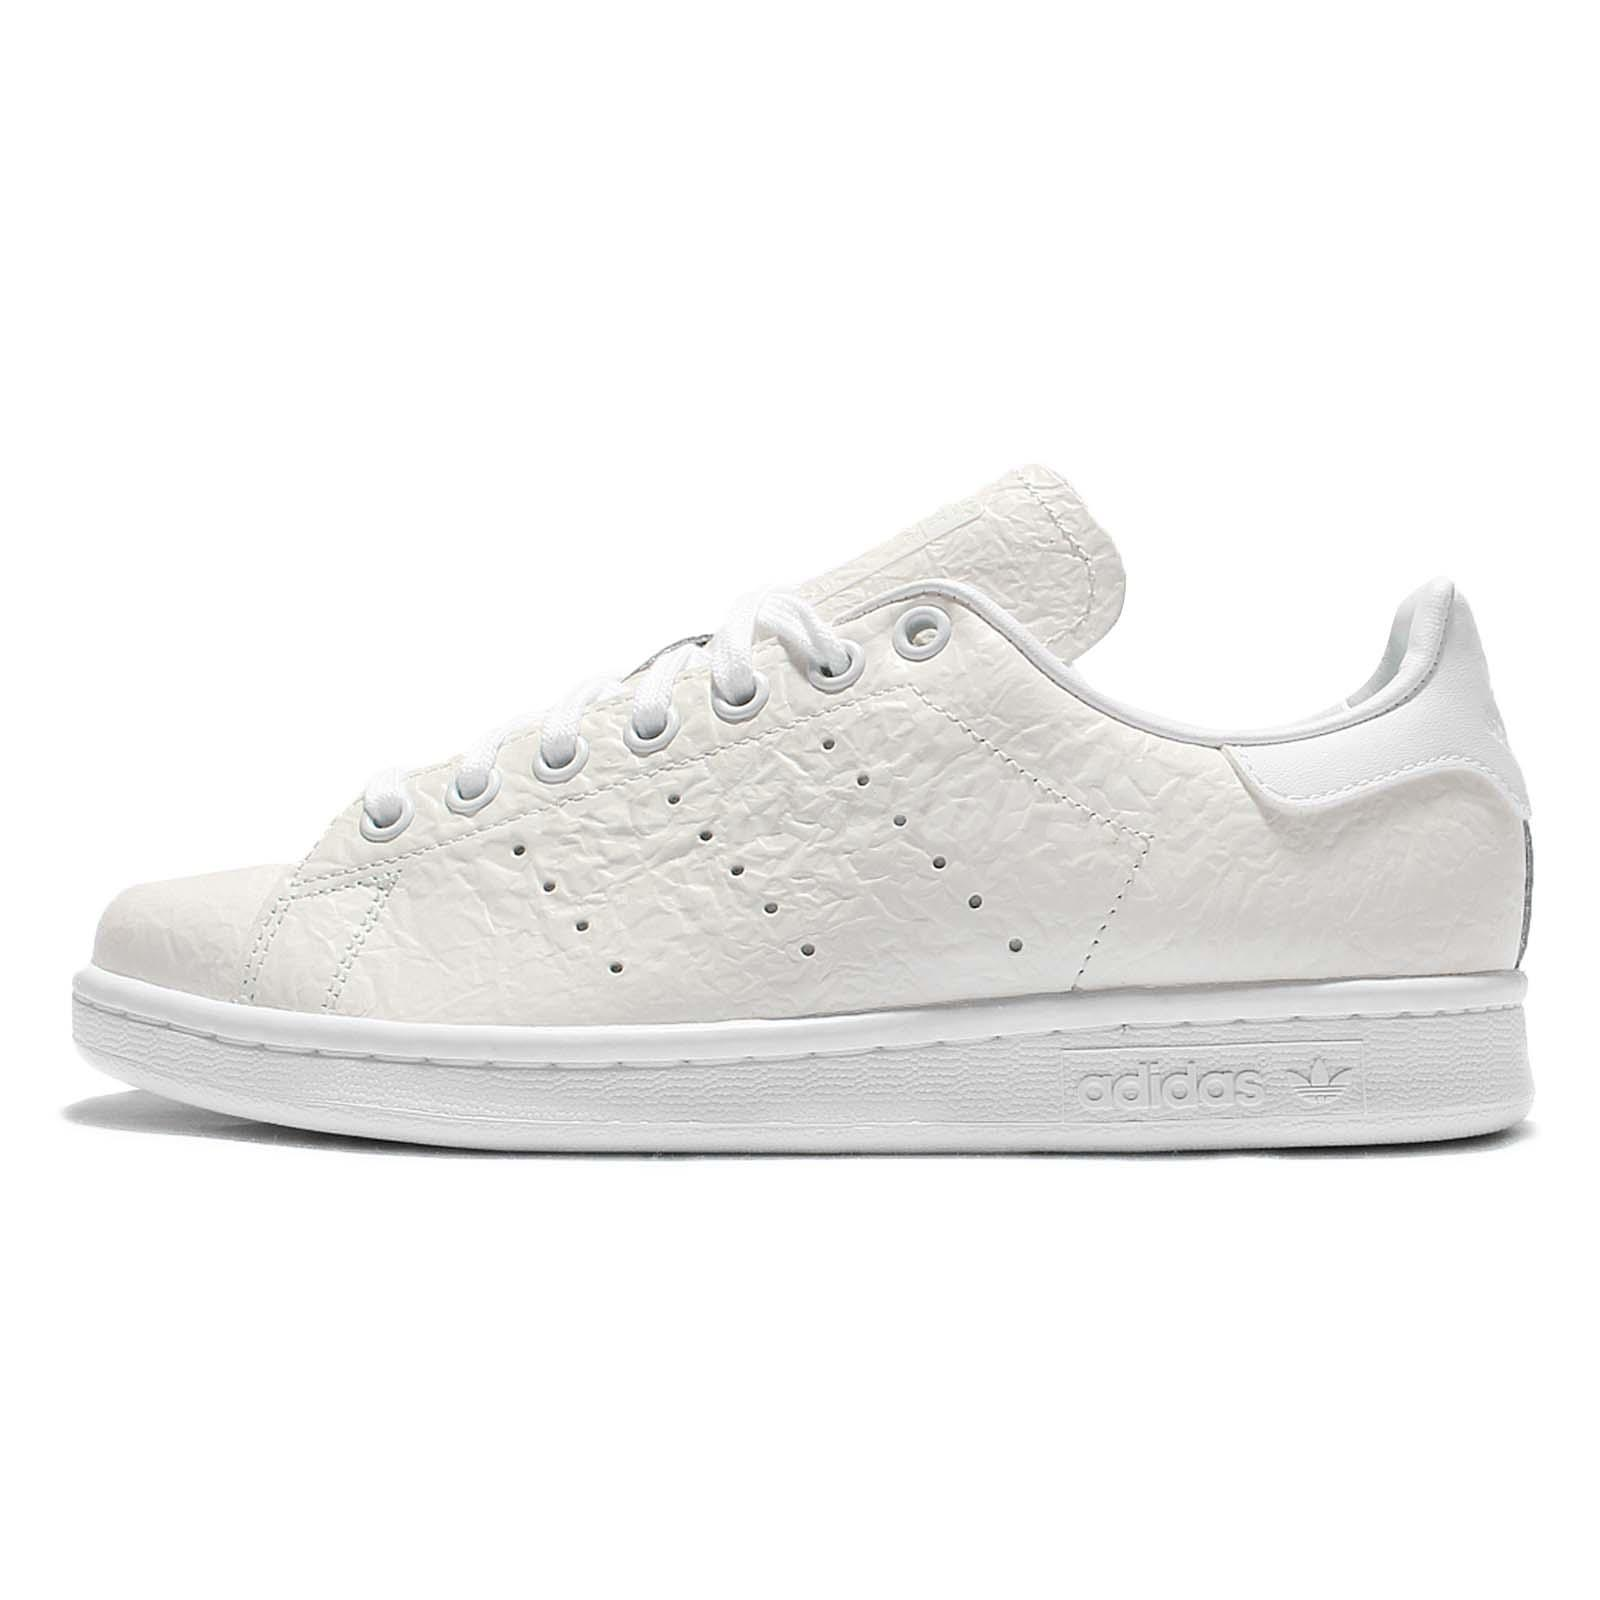 adidas originals stan smith w color change white leather womens shoes s76666 ebay. Black Bedroom Furniture Sets. Home Design Ideas